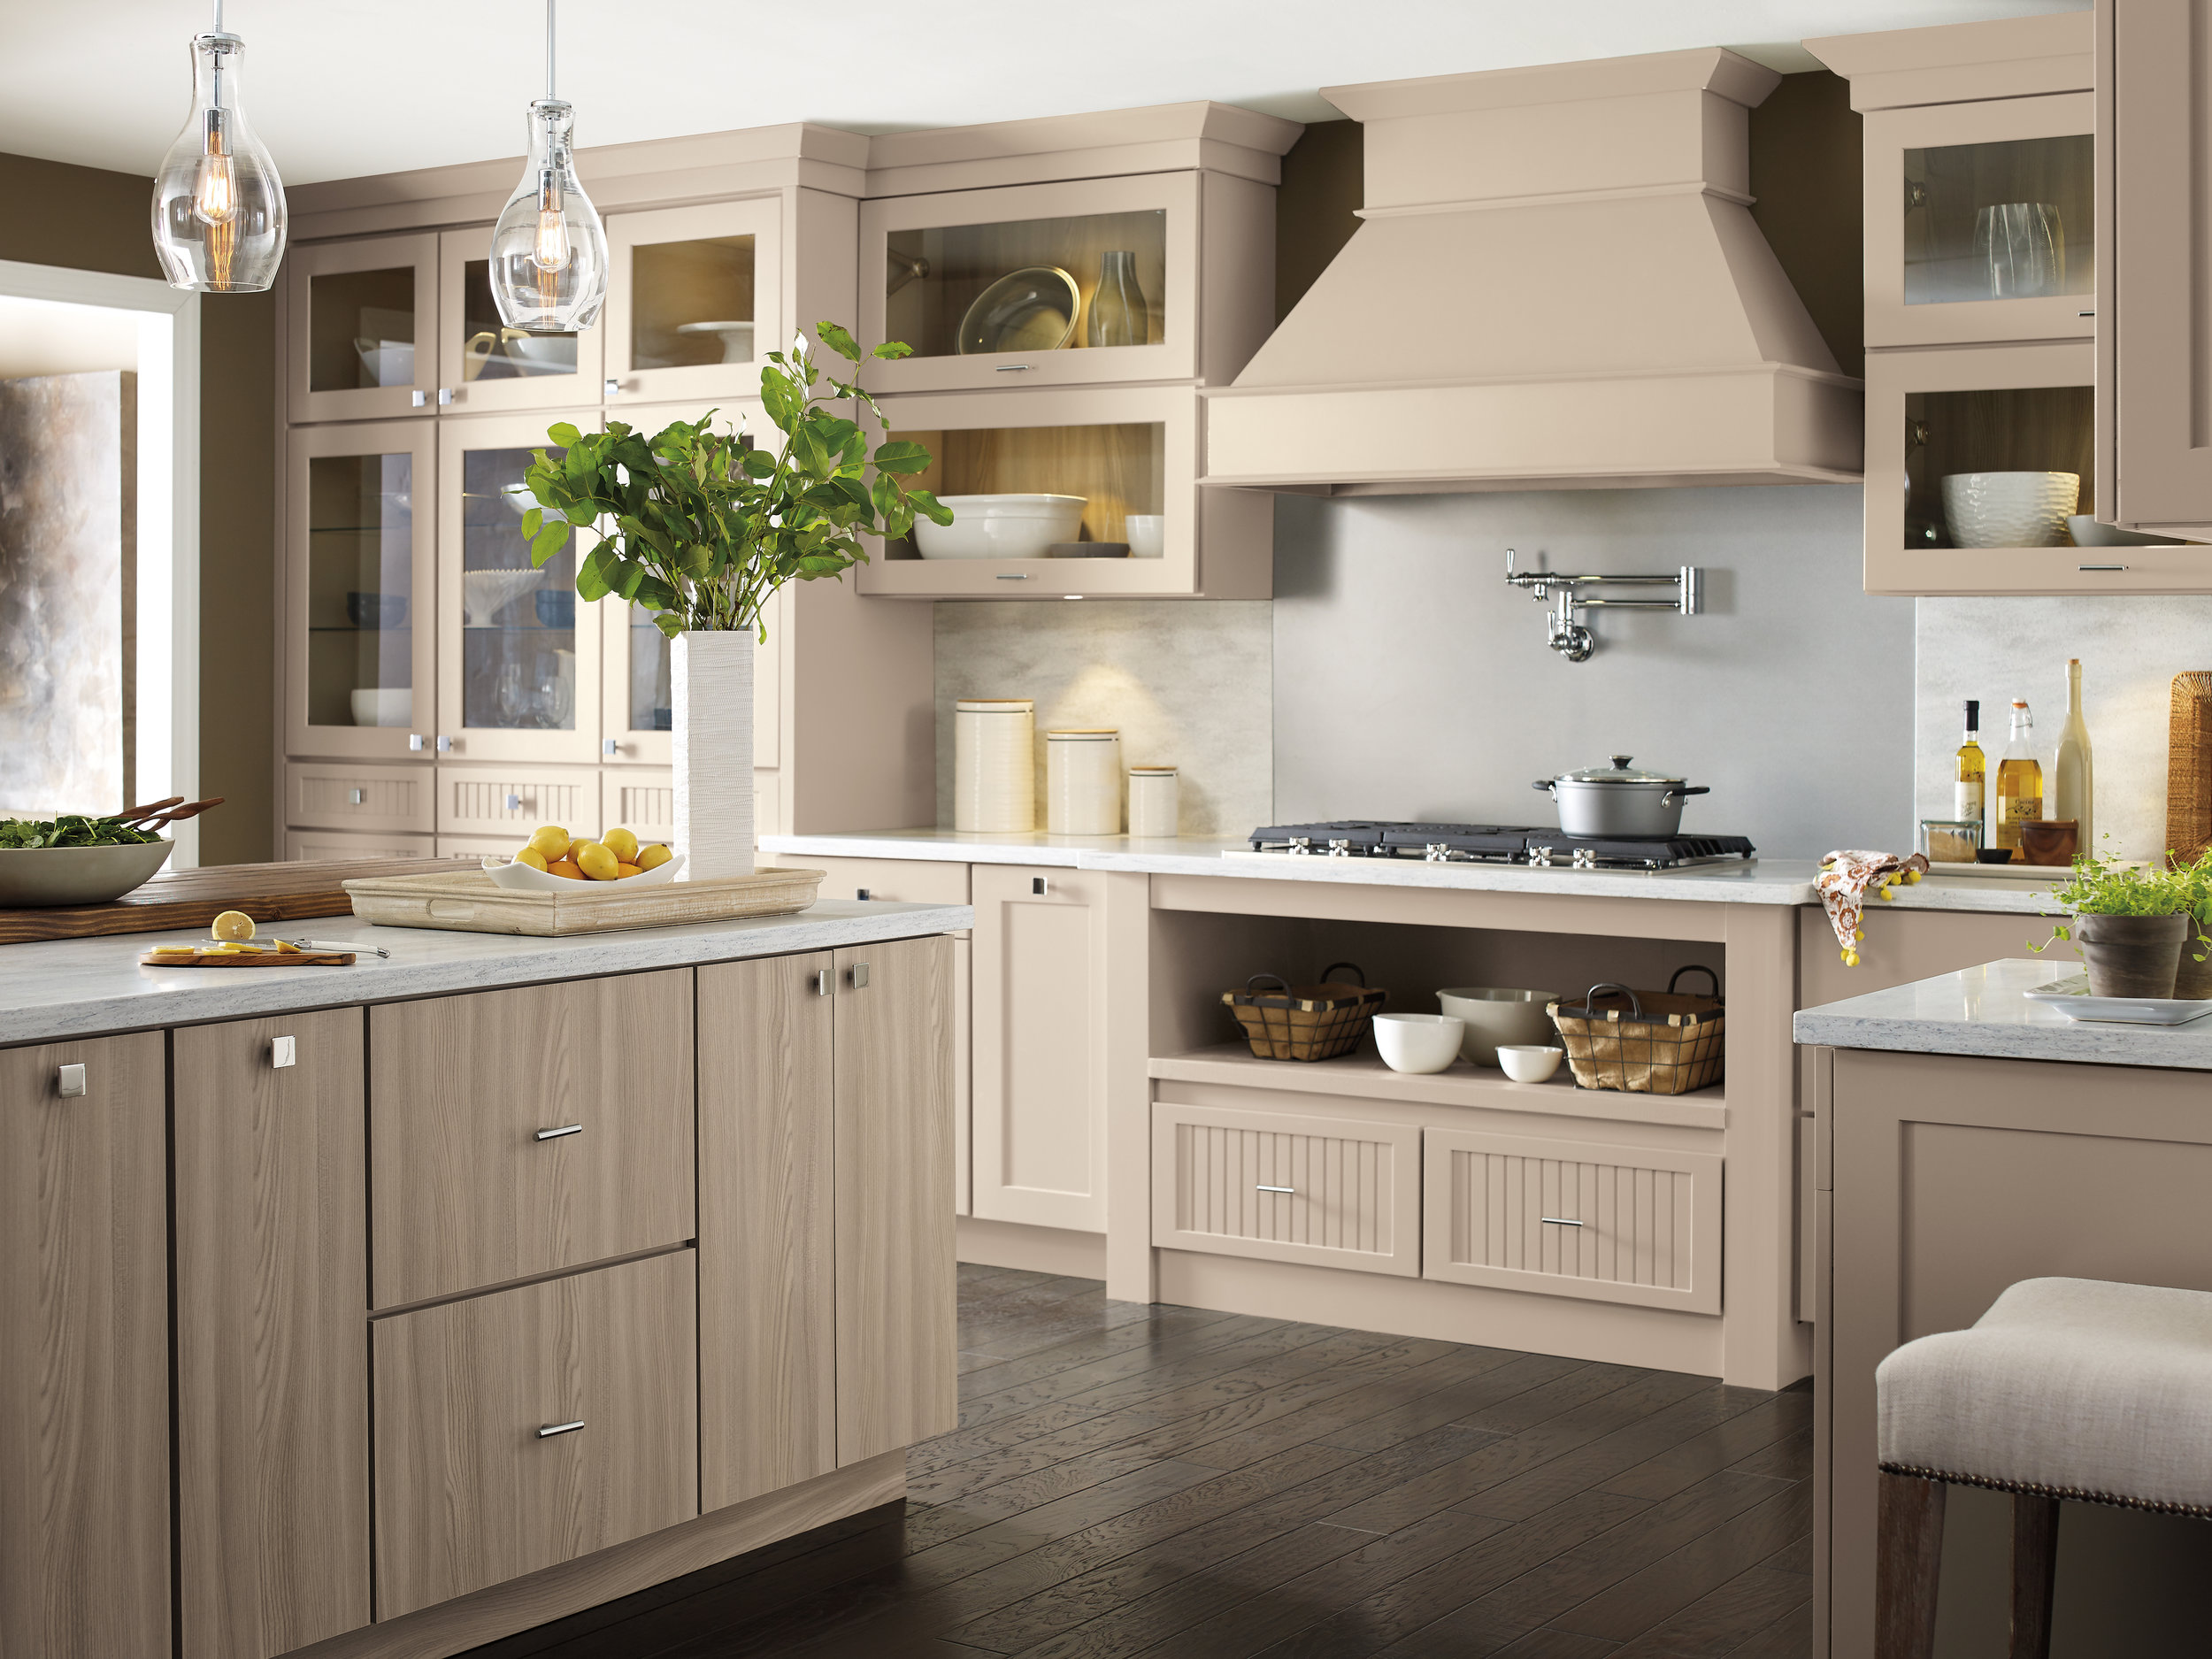 Nicole Janes Design Diamond Cabinetry Off White Kitchen Wood Hood Island